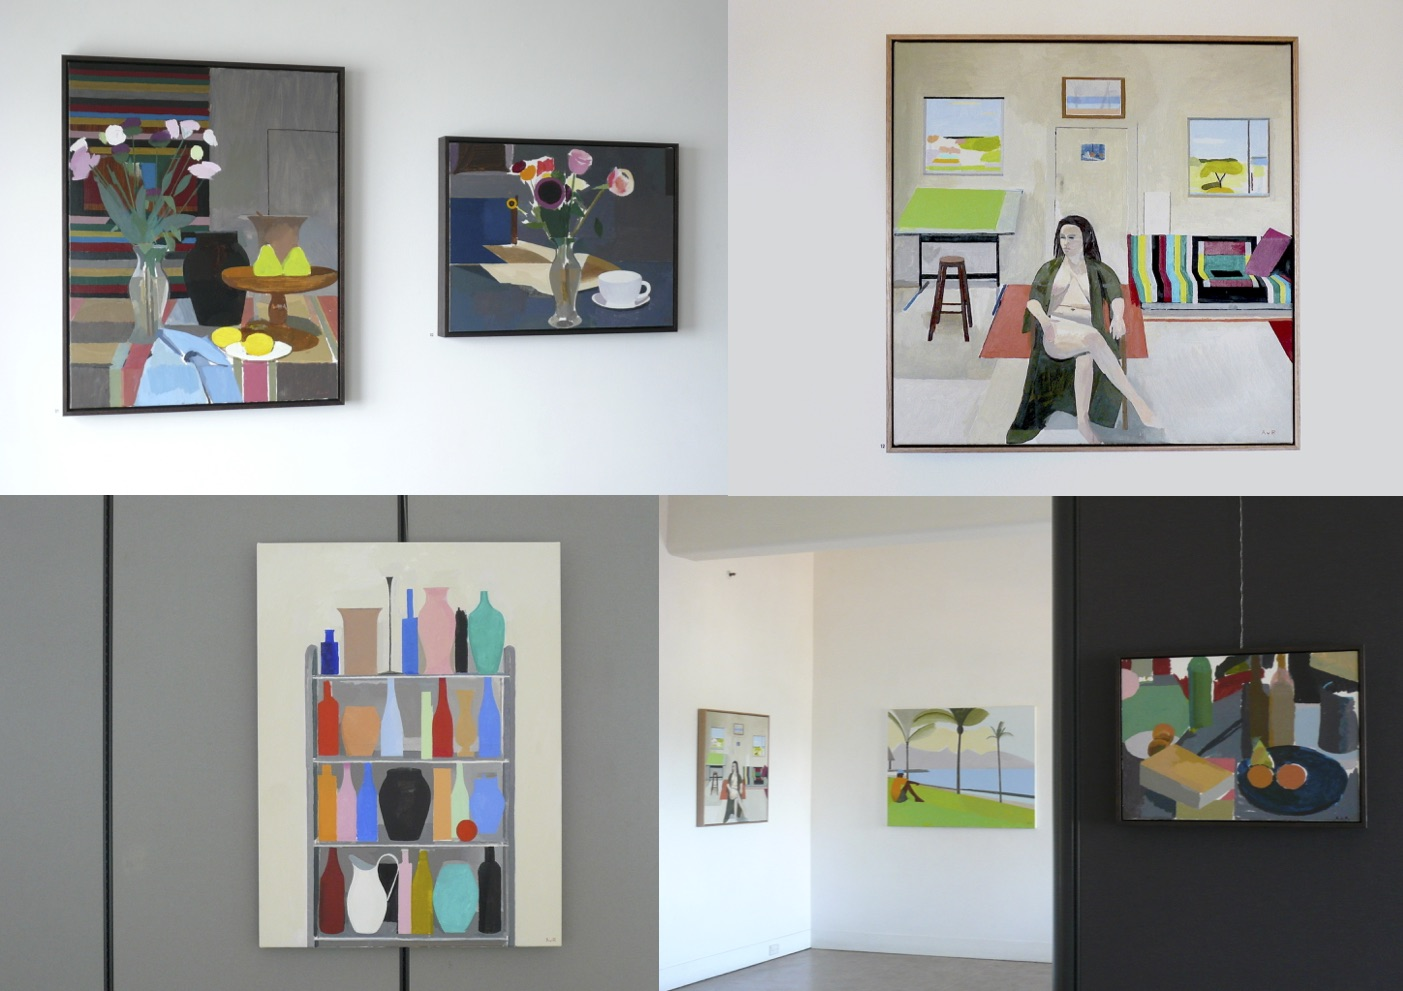 Anselm van Rood overview 2018 lll